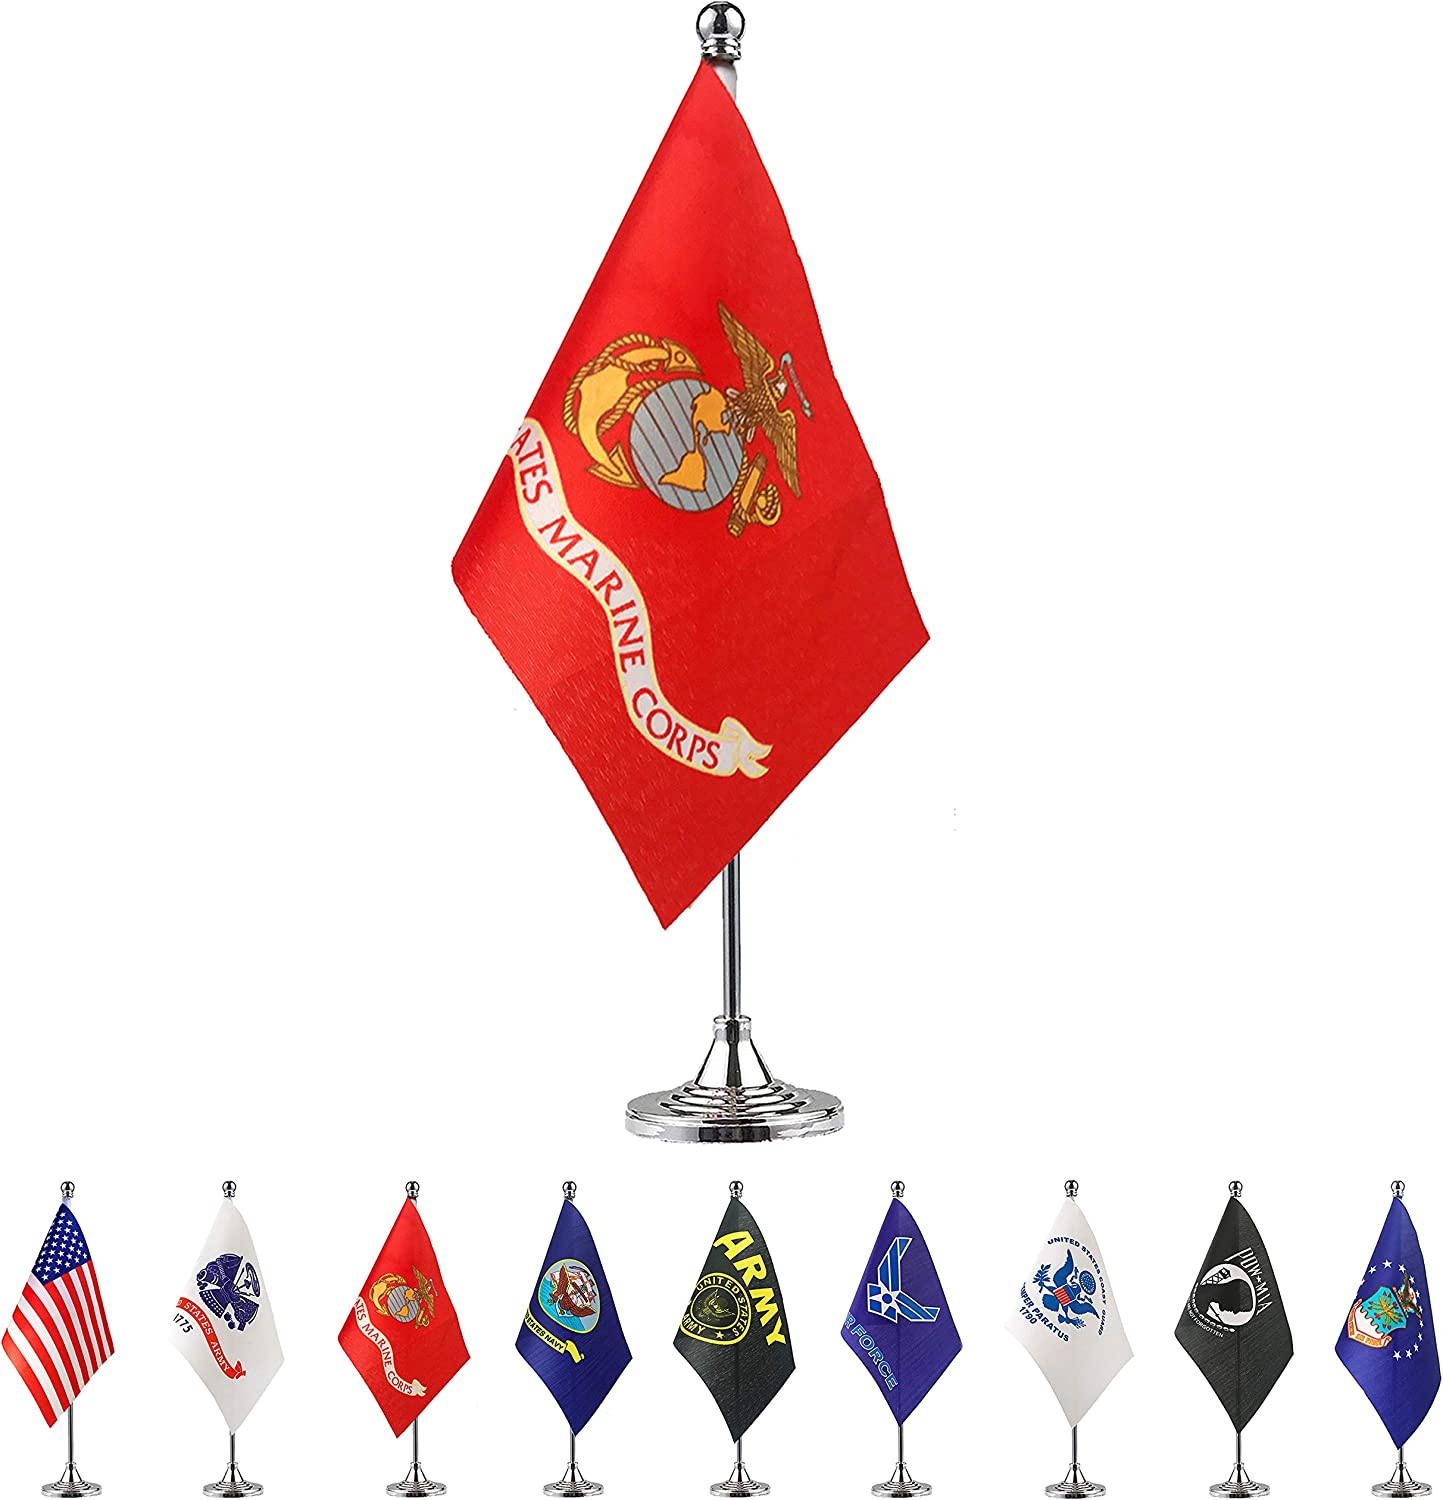 TSMD US Marine Corps Desk Flag Small Mini United States Military Table Flags with Stand Base,Decorations Supplies for Army Party Events Celebration